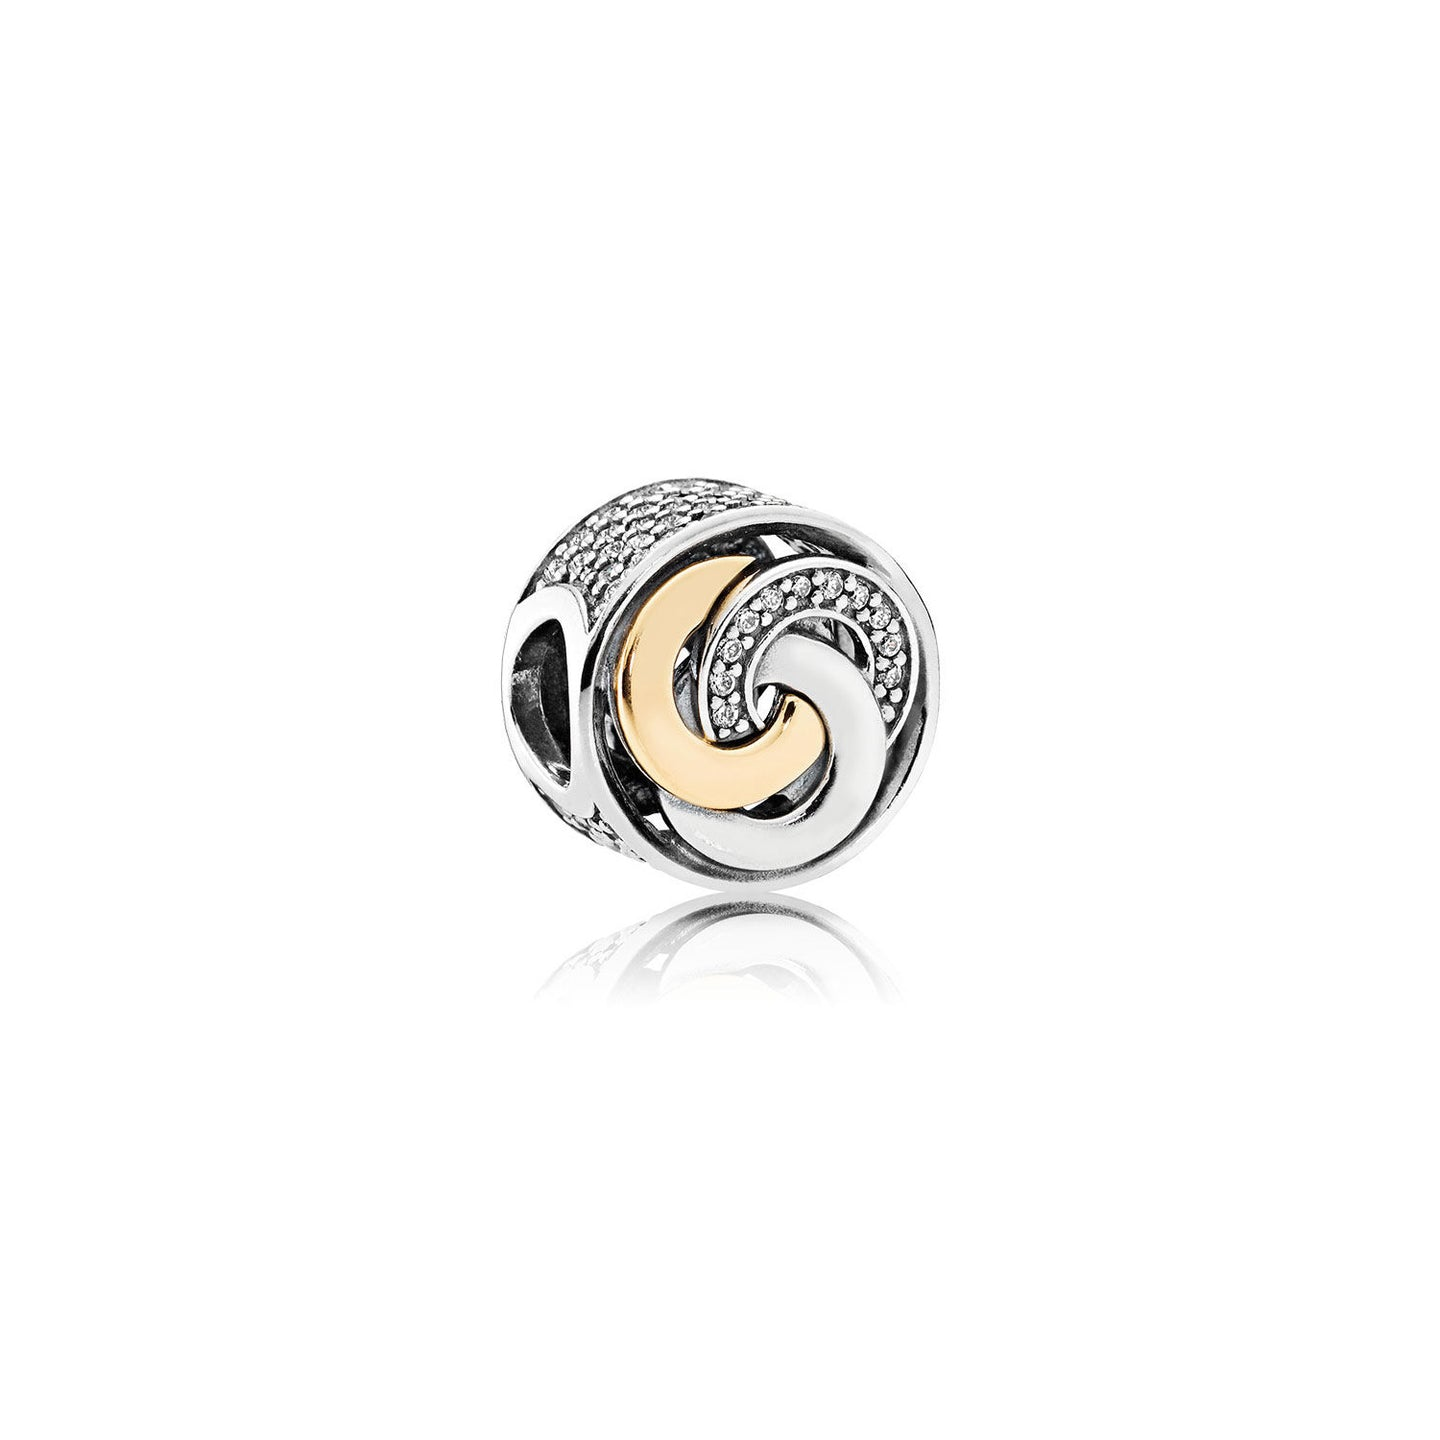 Interlinked Circles Charm - Sterling Silver, Cubic Zirconia Gemstones - ARJWVC1051RD